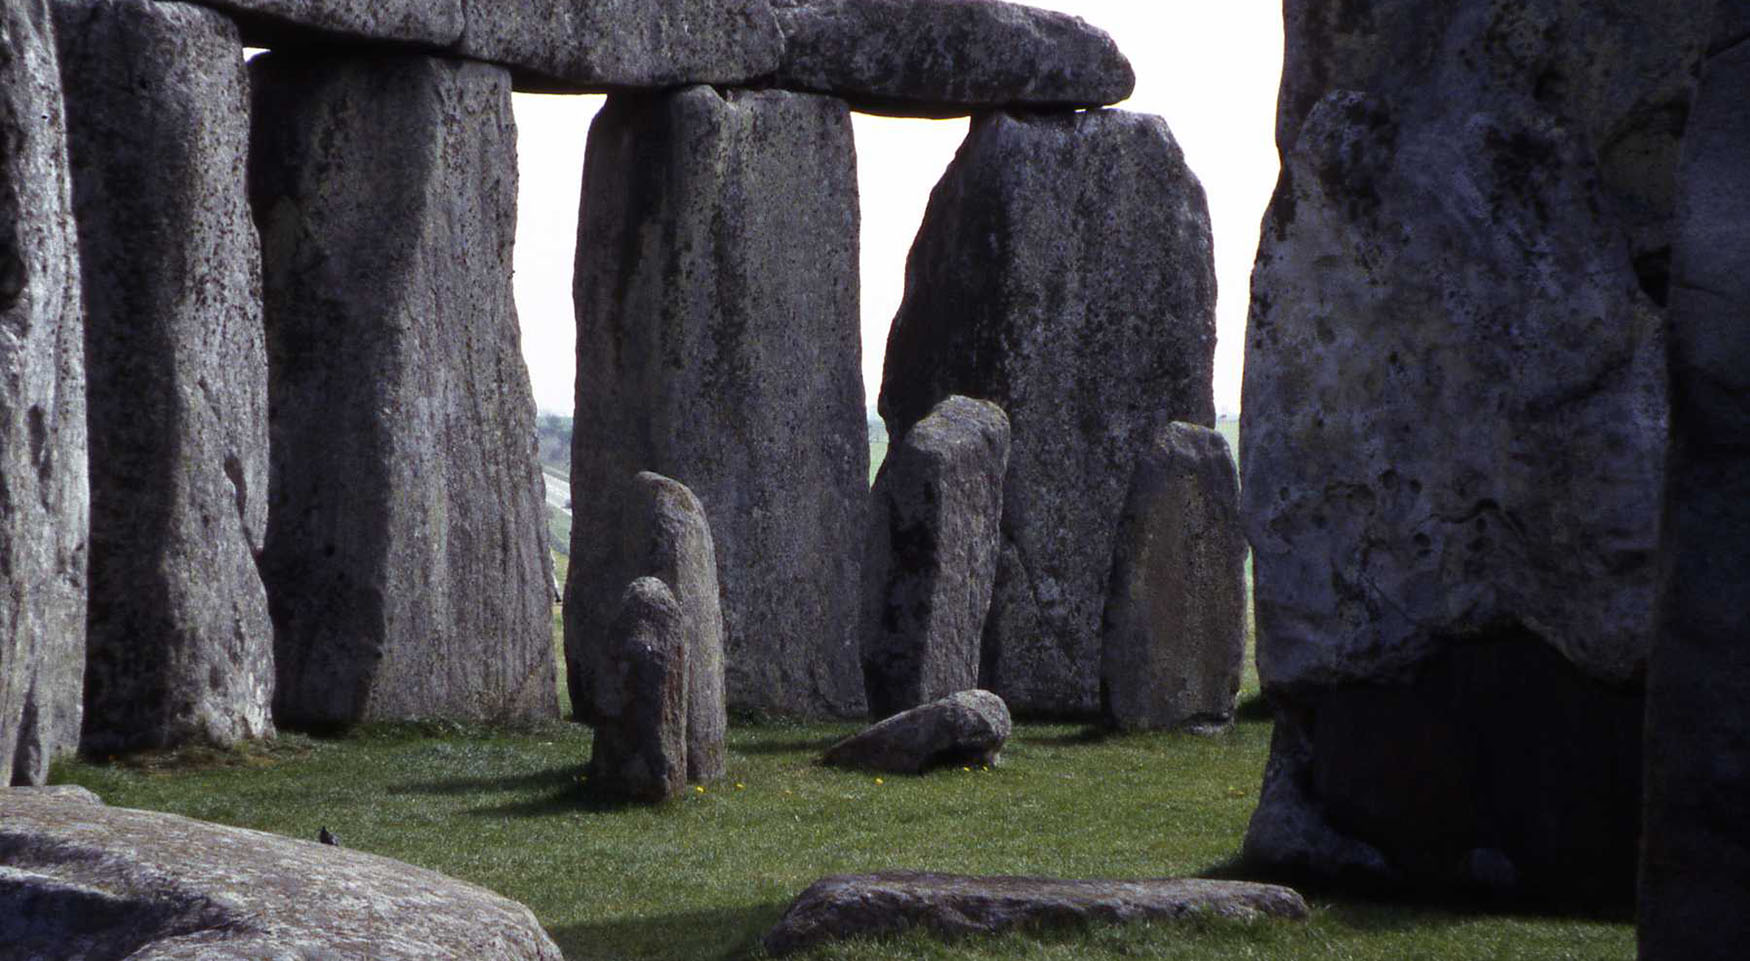 Stonehenge - ritual alignment with solstice rising and setting suns, 2000+ years old